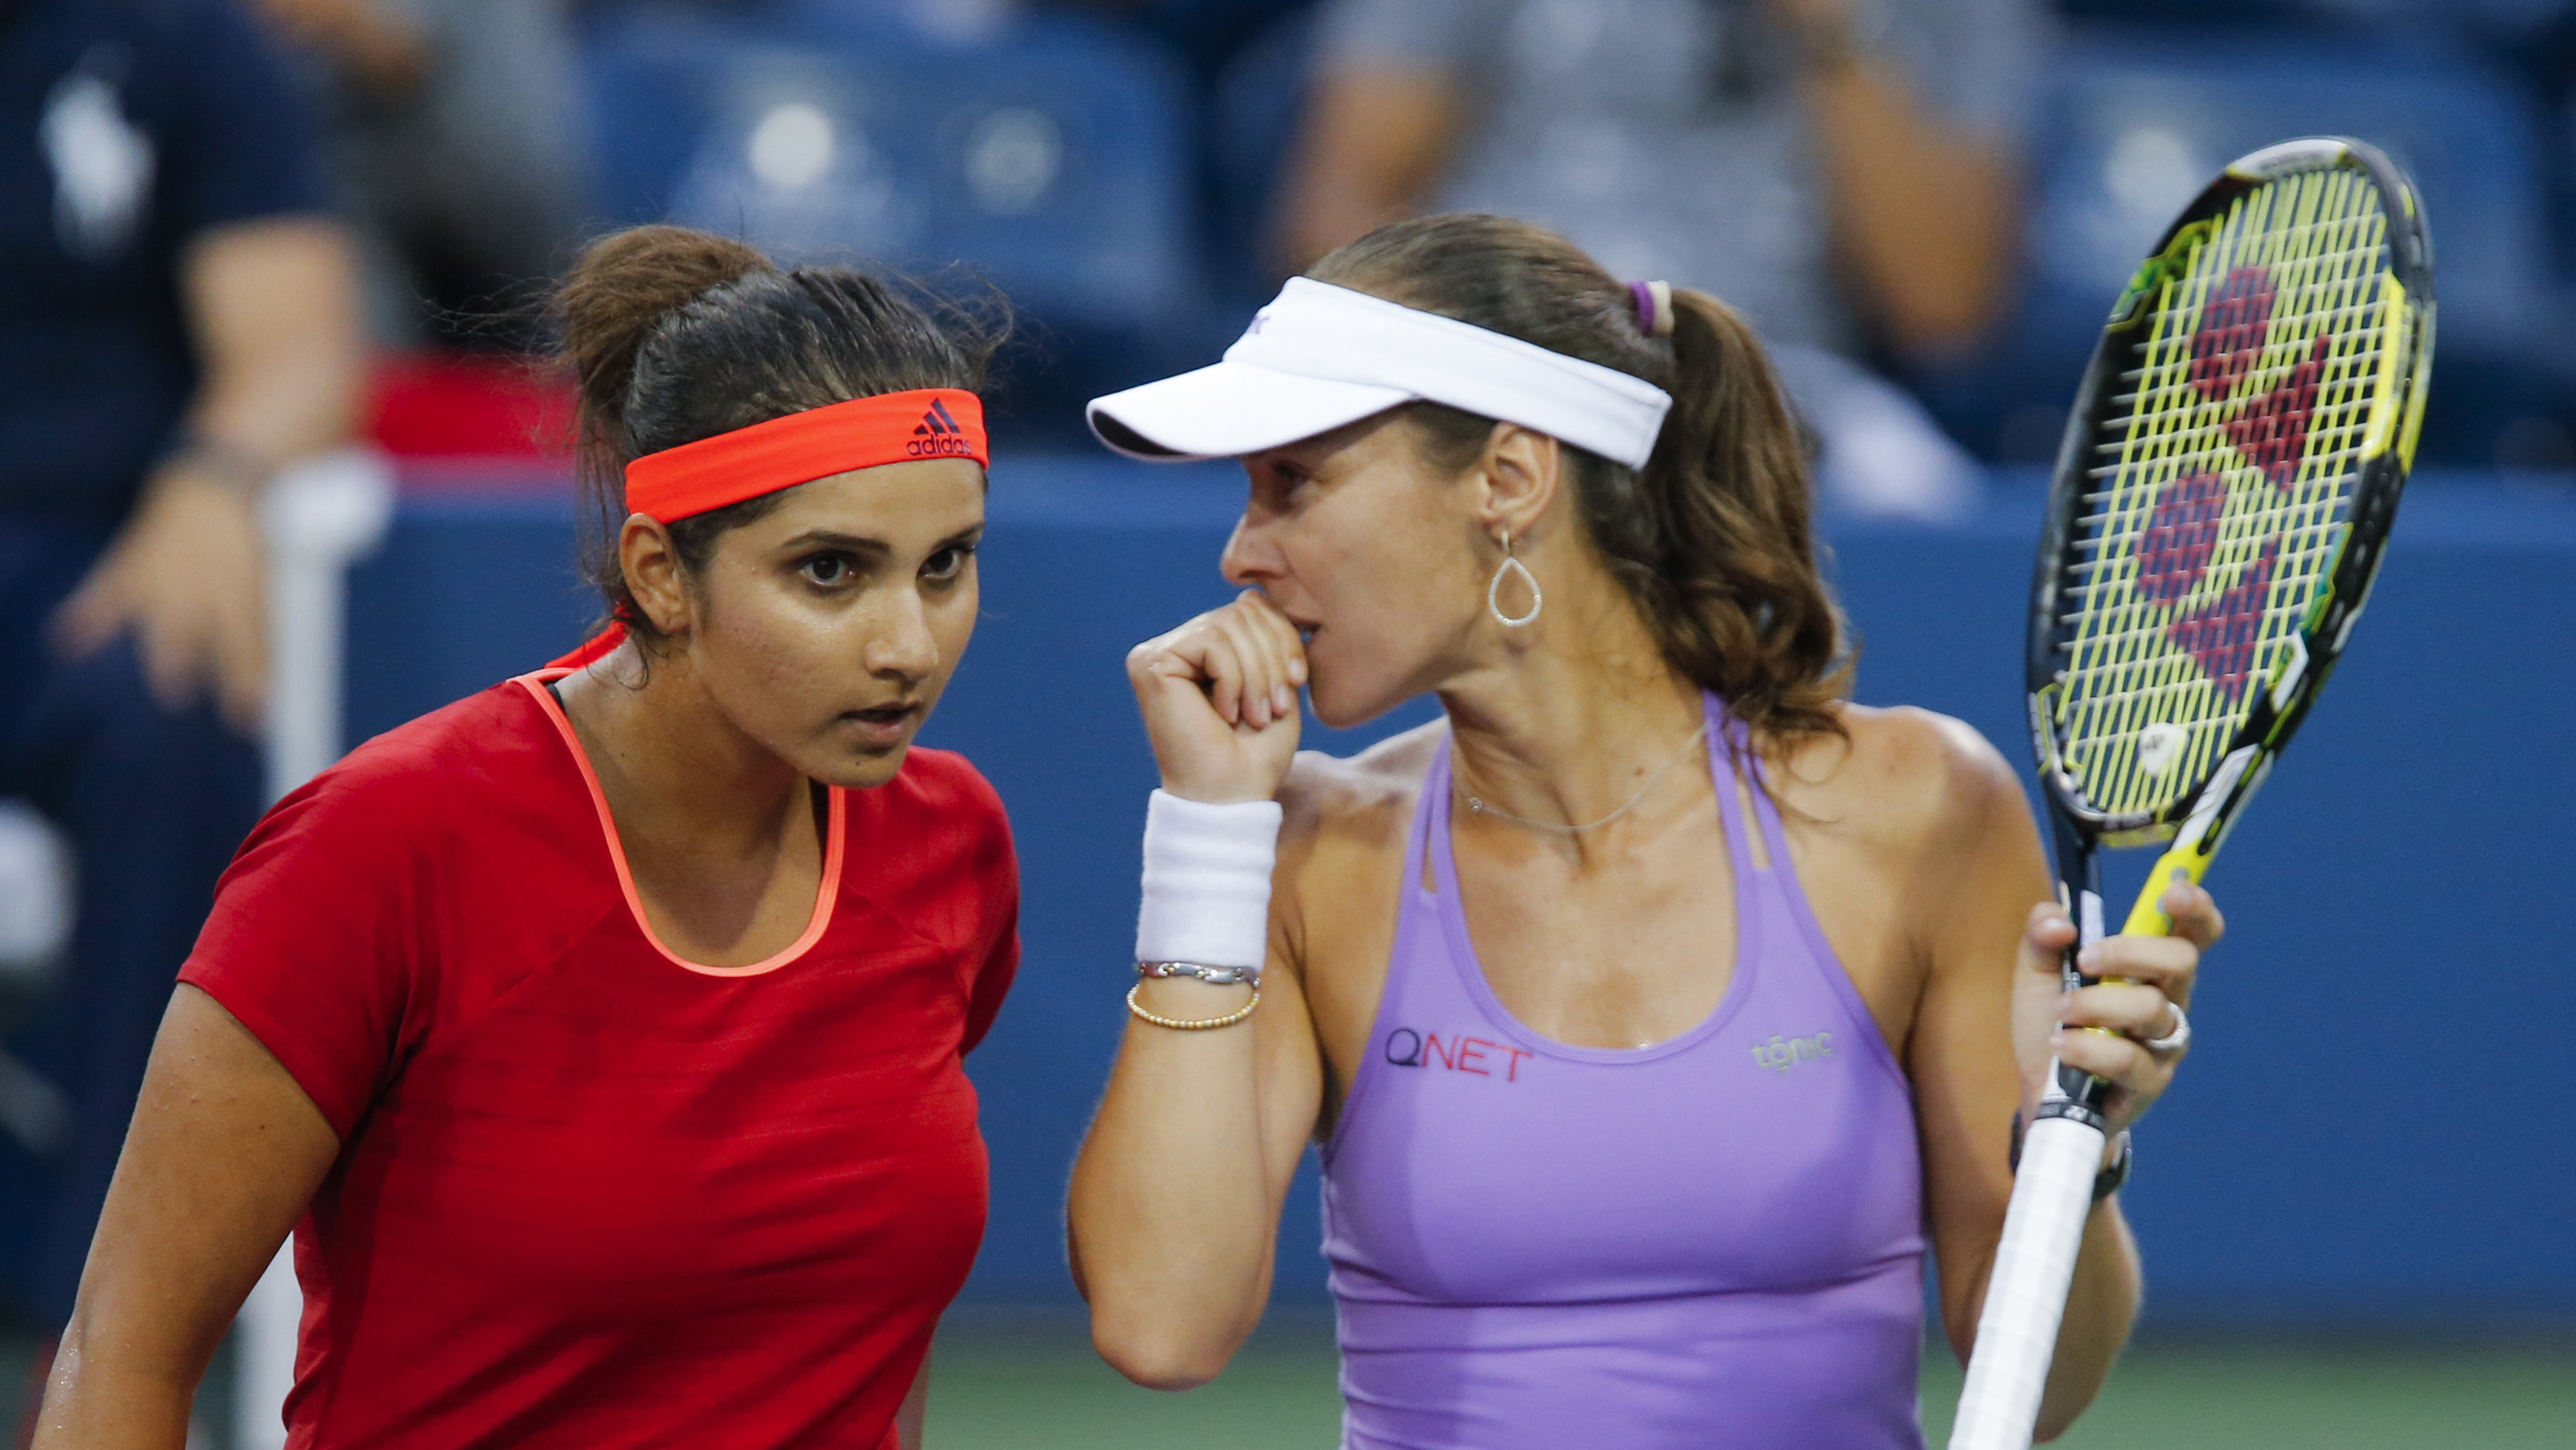 Sania Mirza of India (L) confers with playing partner Martina Hingis of Switzerland during their women's doubles semifinals match against Sara Errani and Flavia Pennetta, both of Italy, at the U.S. Open Championships tennis tournament in New York, September 9, 2015. REUTERS/Eduardo Munoz - RTSED6